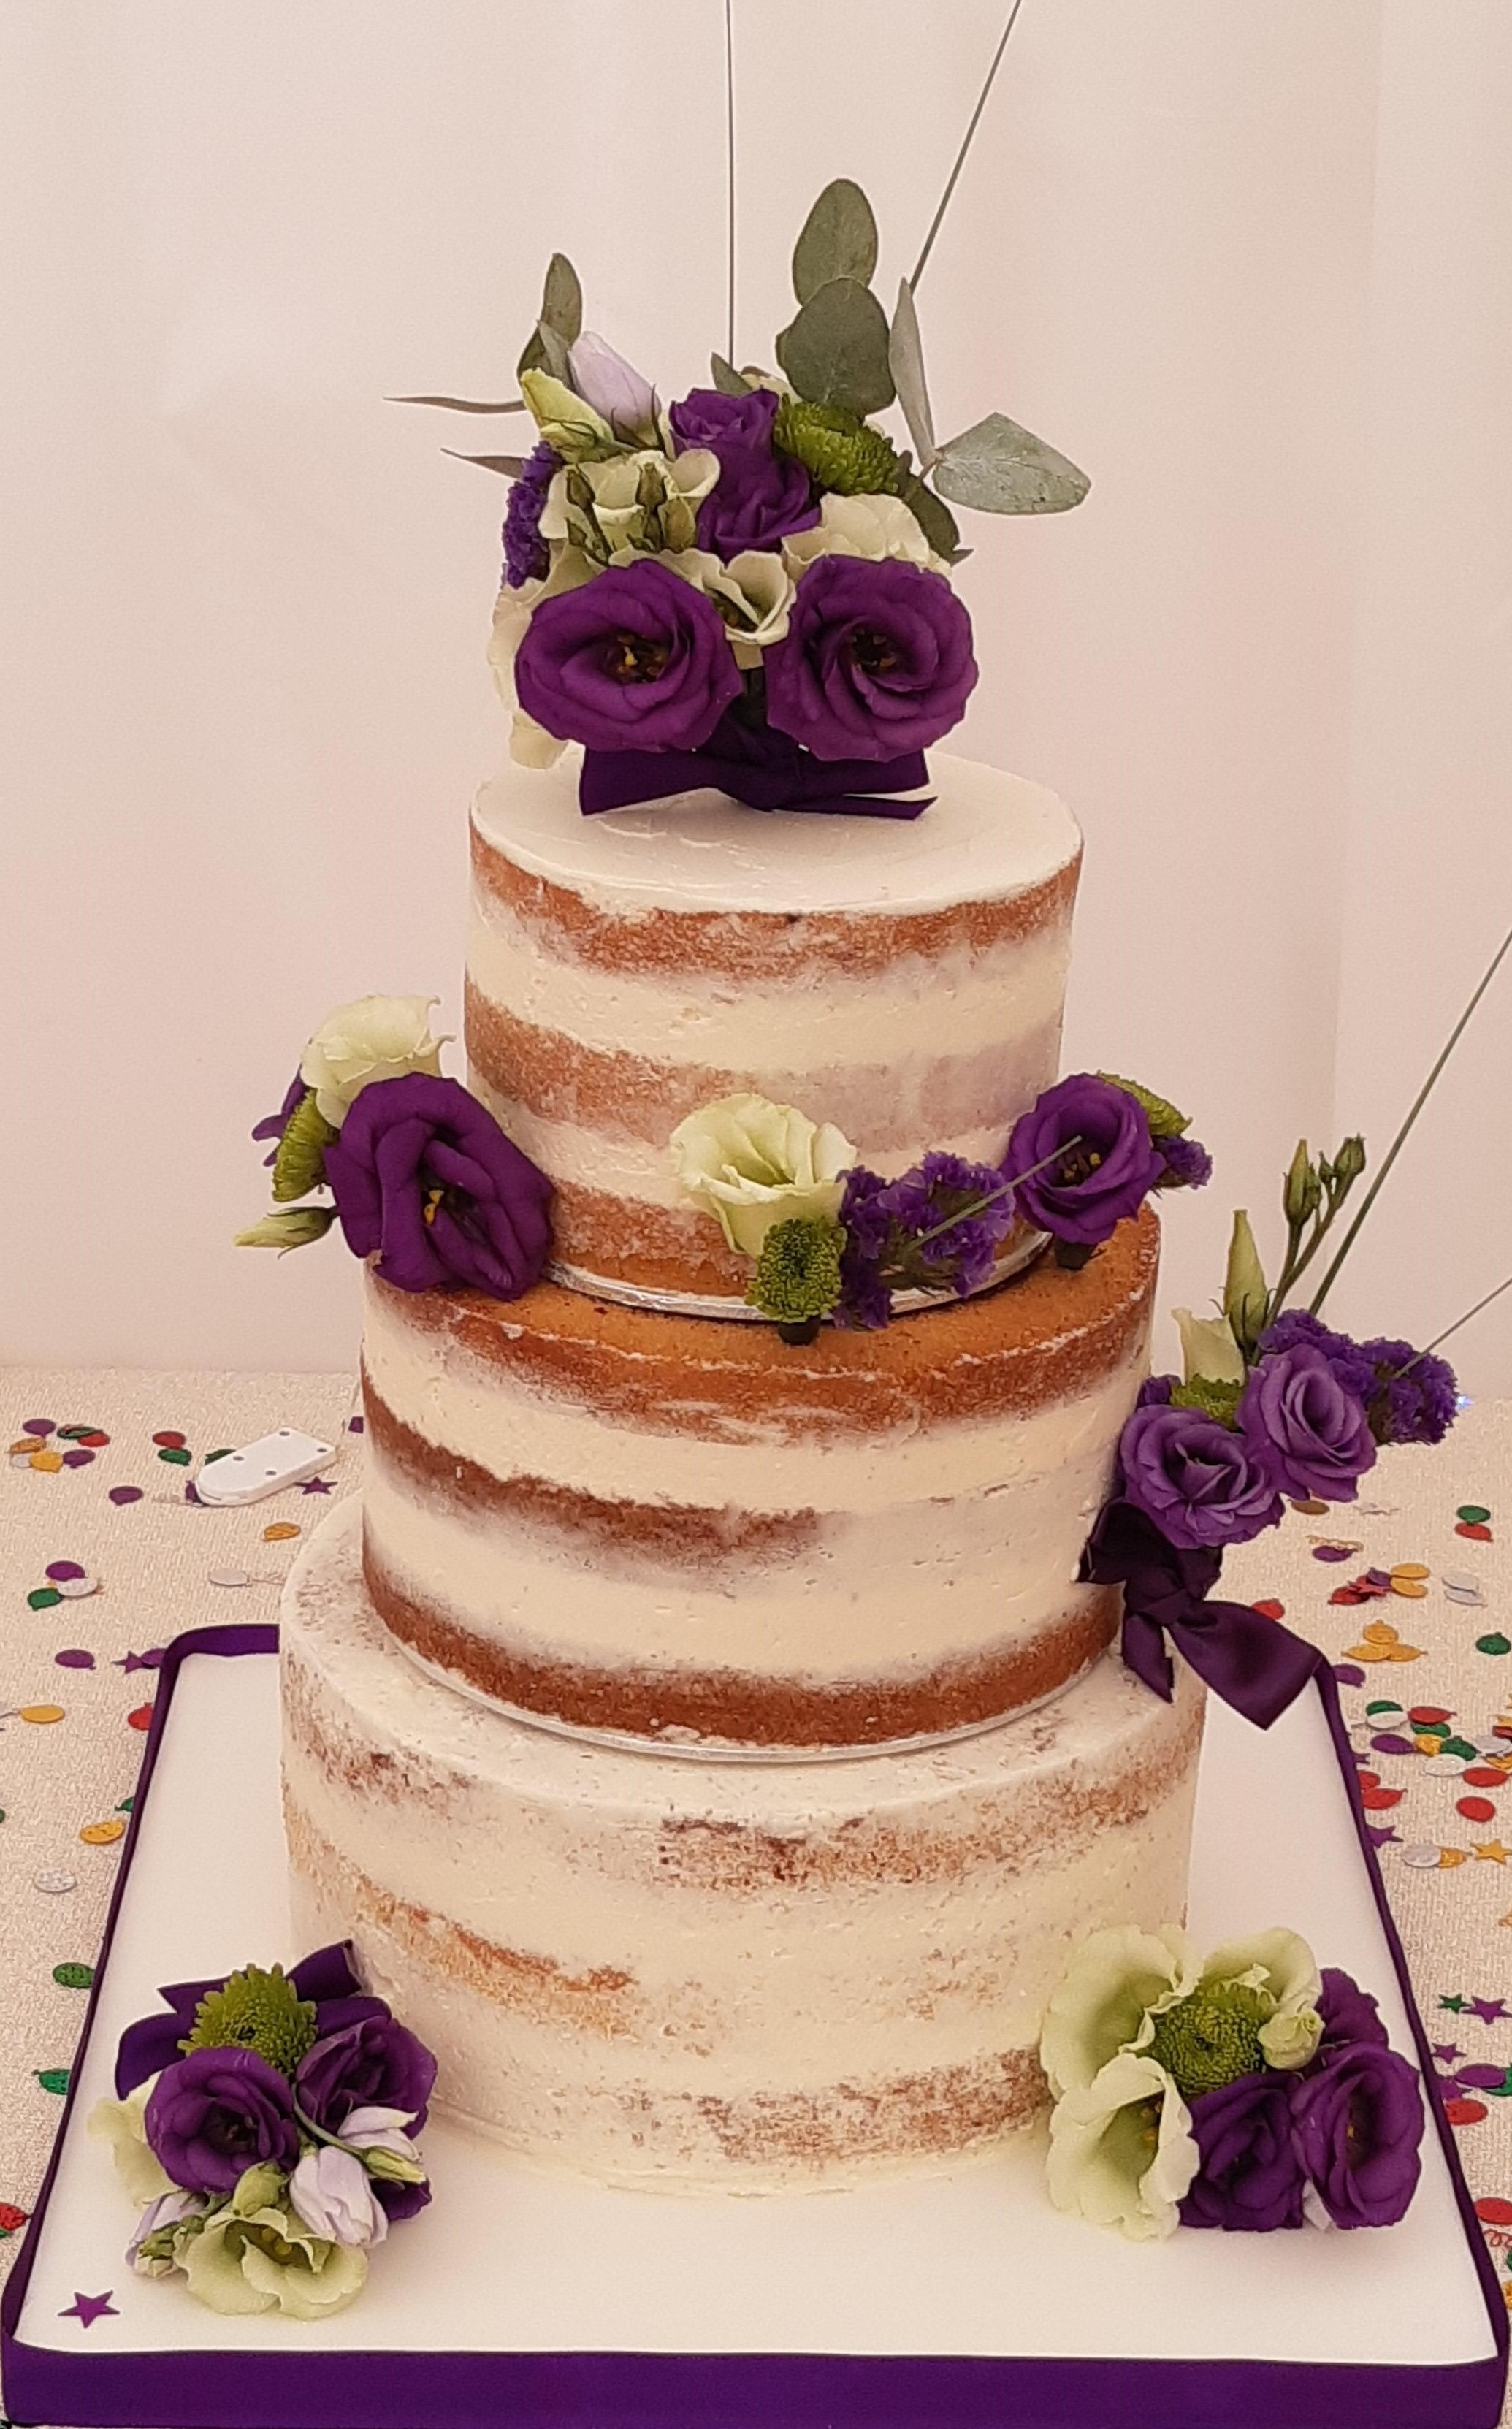 wedding cake - 3 tiers of naked wedding cake